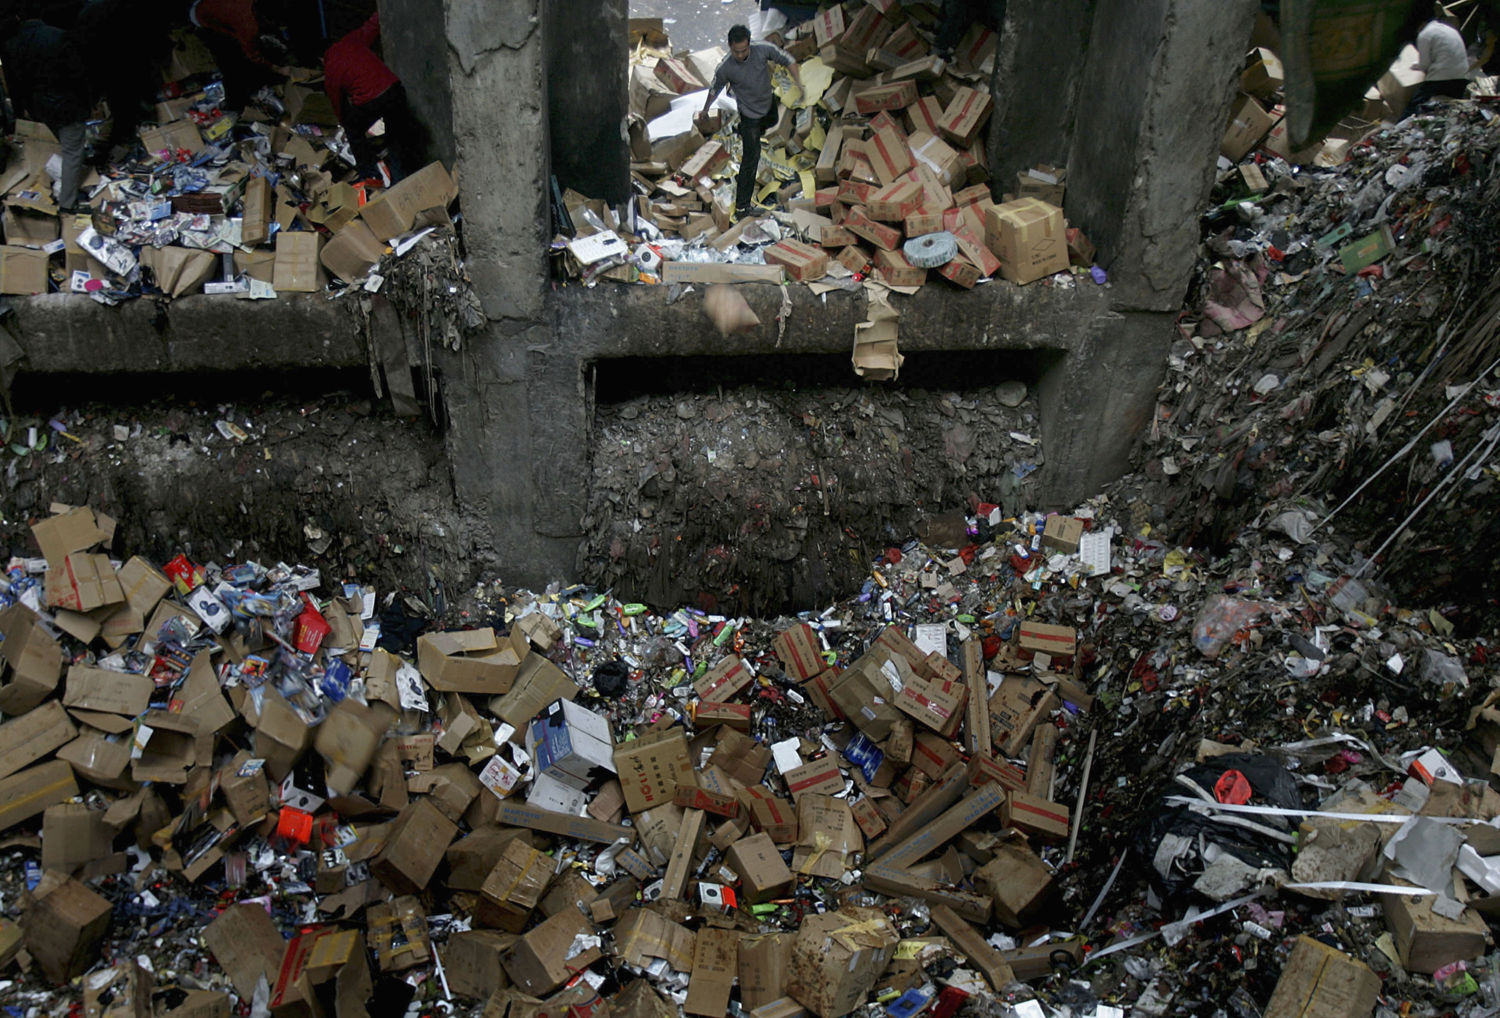 As China Pushes Waste-to-Energy Incinerators, Protests Are Mounting